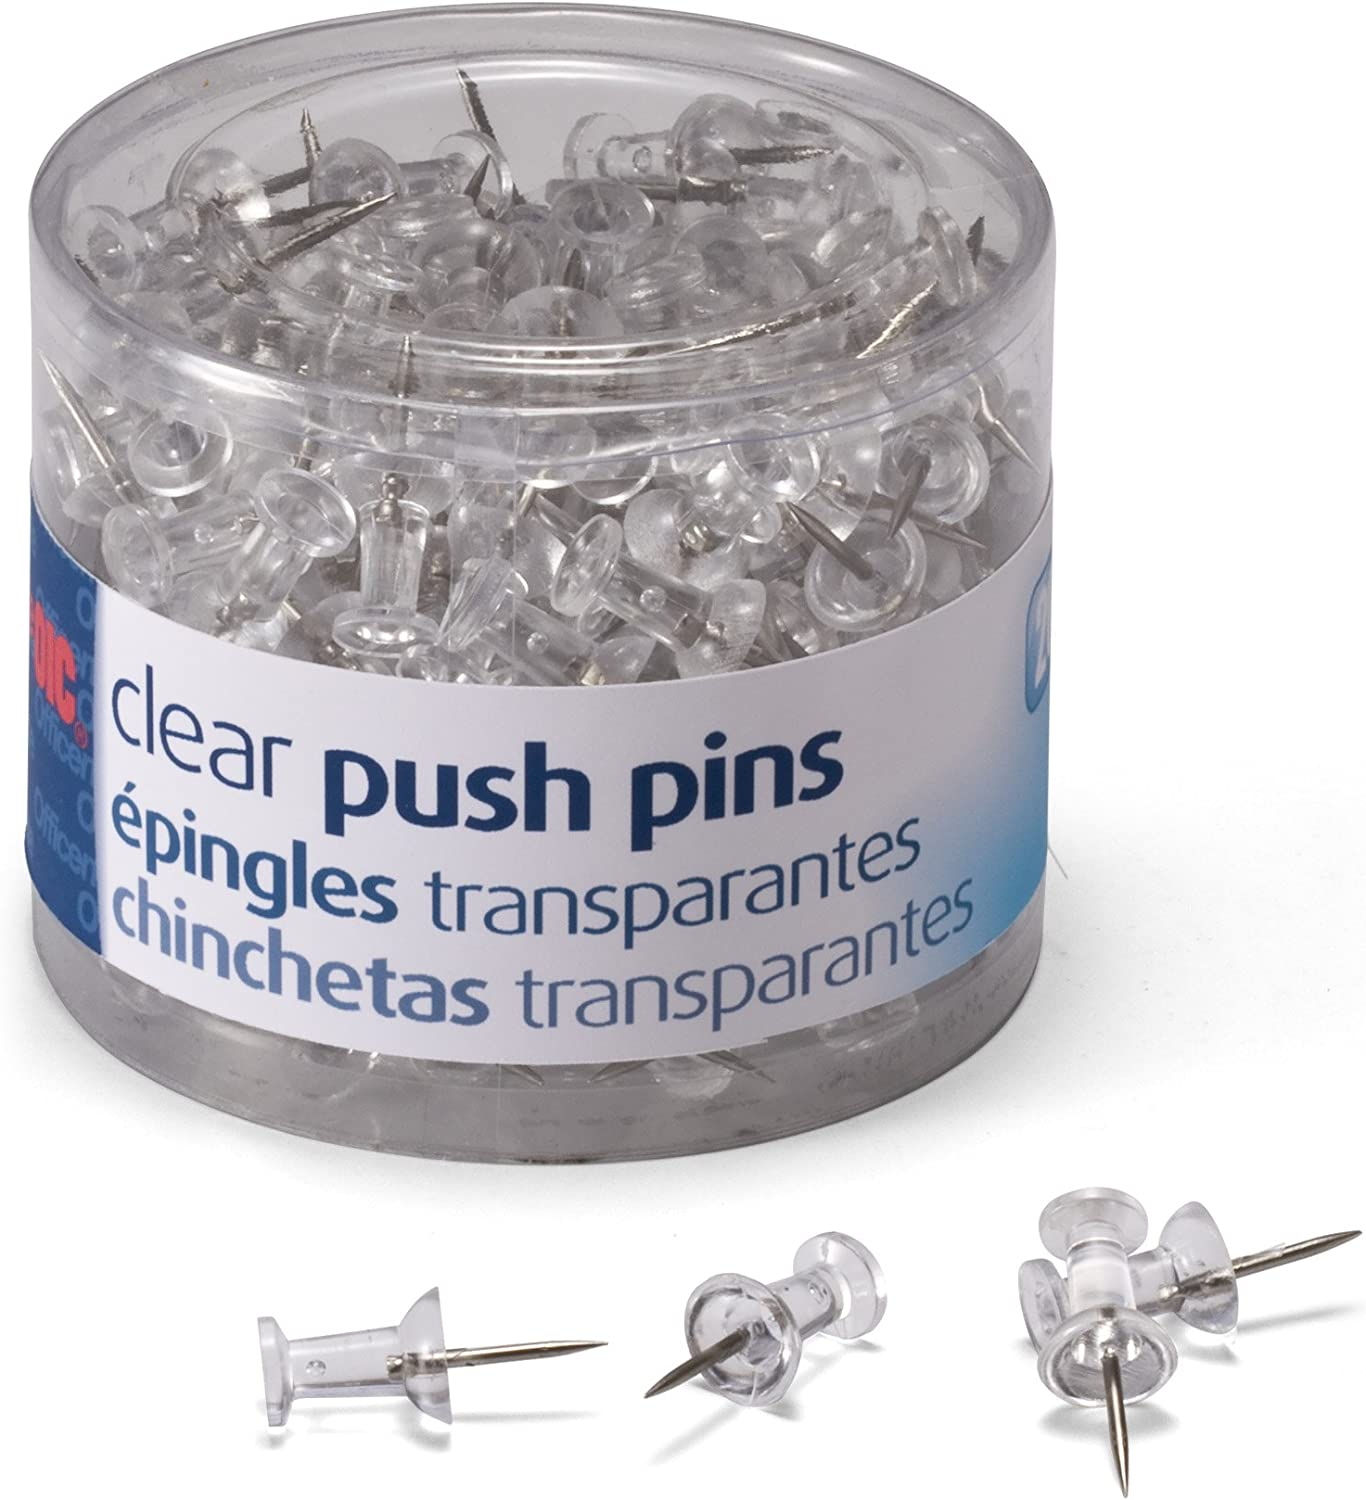 Steel Point Push Pins 200-Count Clear Plastic Head